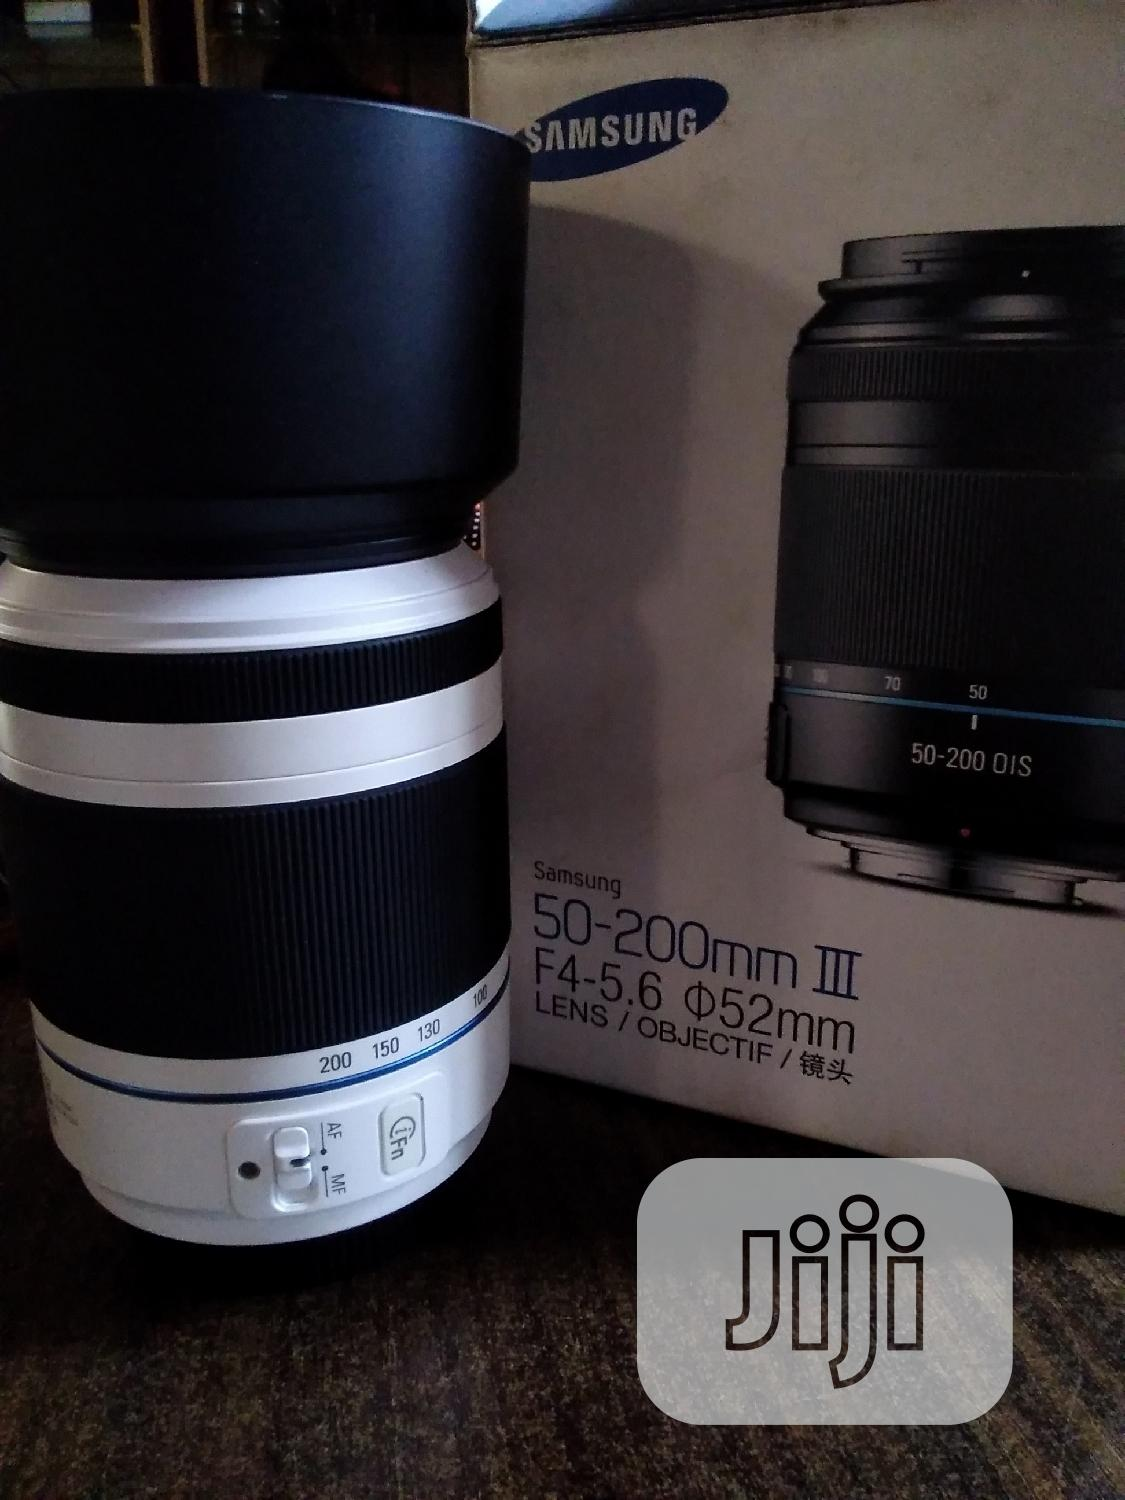 Samsung 50-200mm Ill F4-5.6 Lens | Accessories & Supplies for Electronics for sale in Alimosho, Lagos State, Nigeria